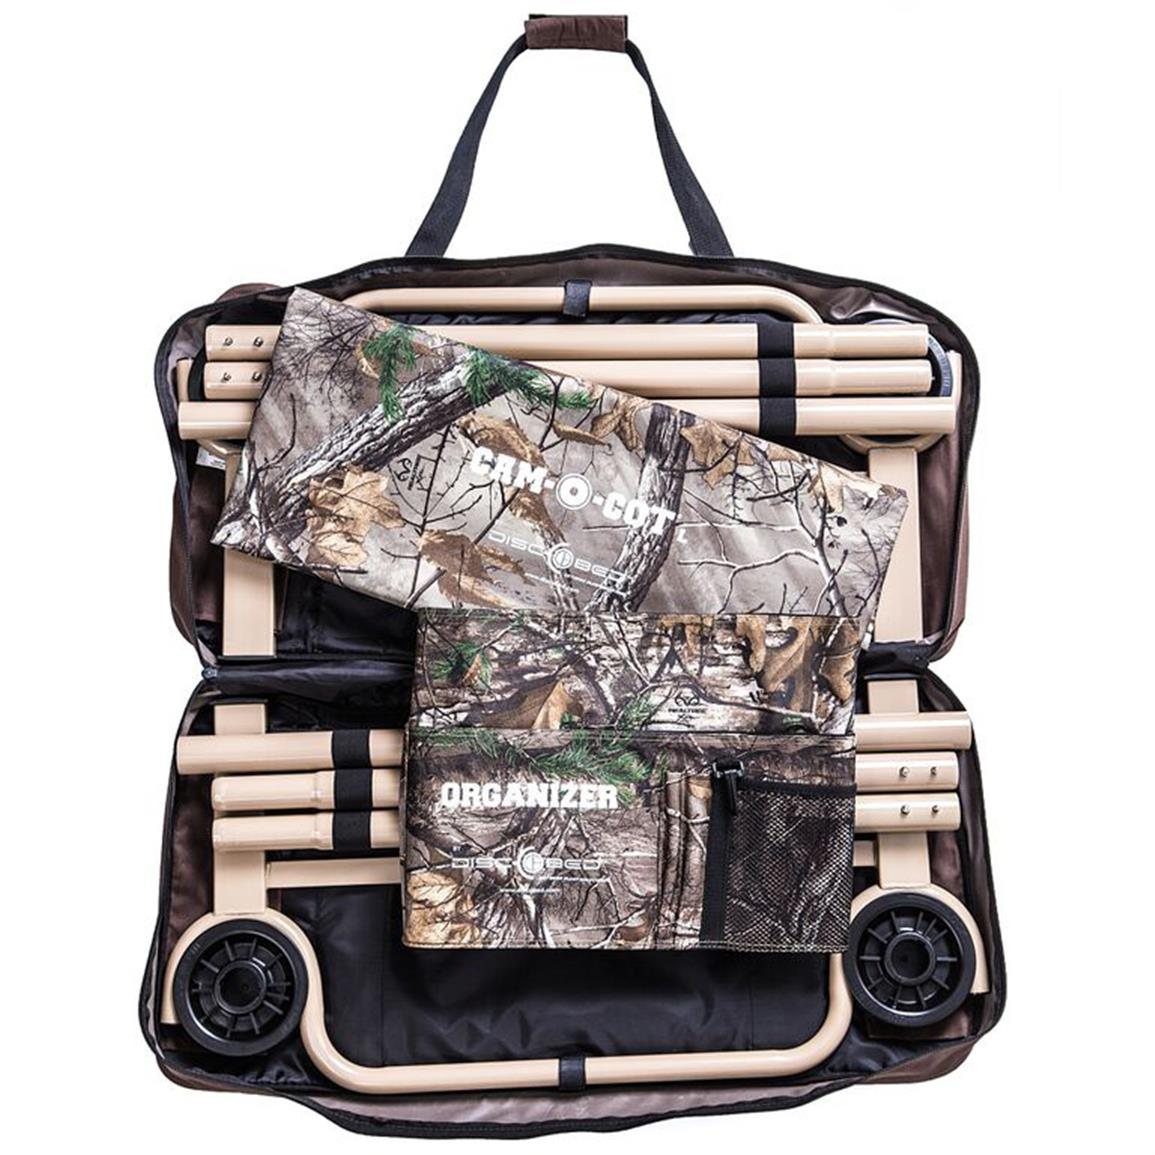 All parts pack down into 2 included zippered canvas bags for easy storage and transport